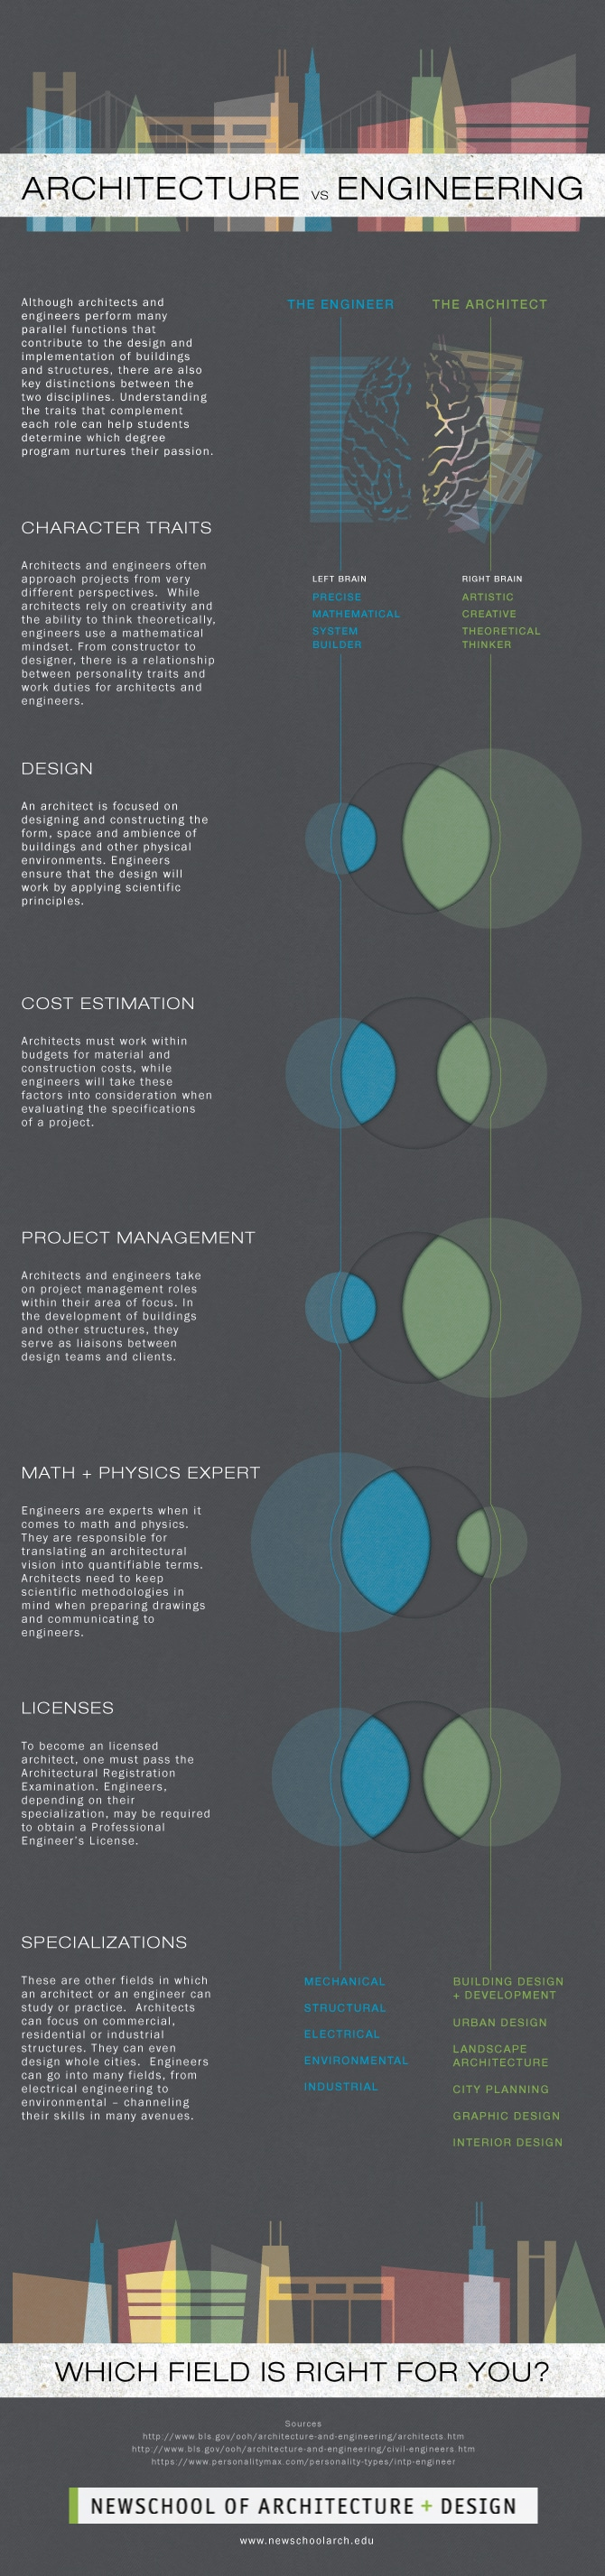 Infographic_Arch_vs_Engineering